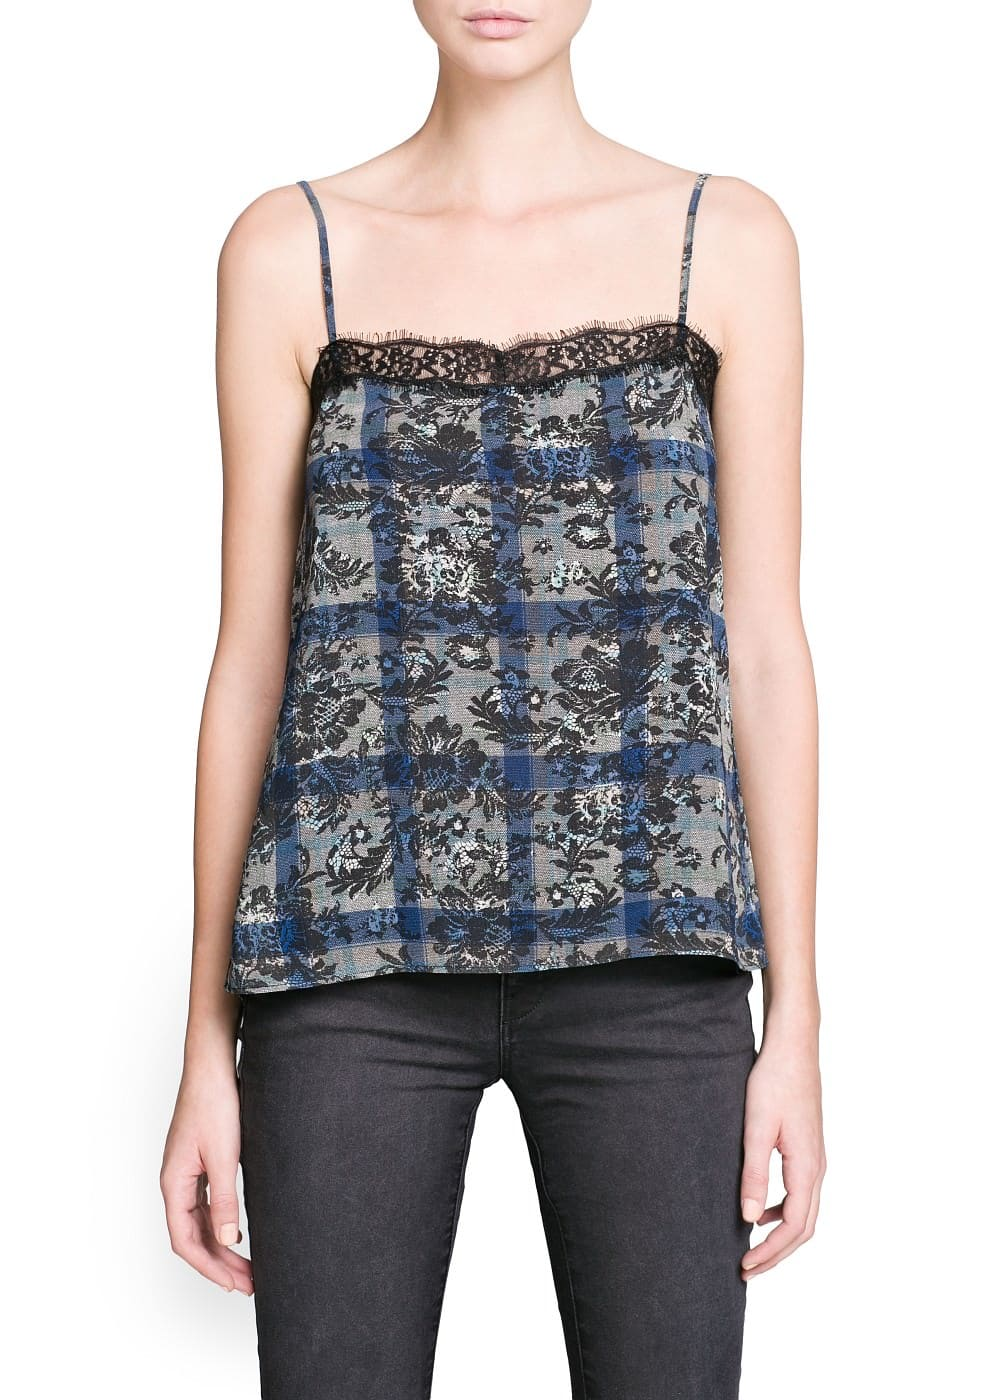 Lace appliqué printed top